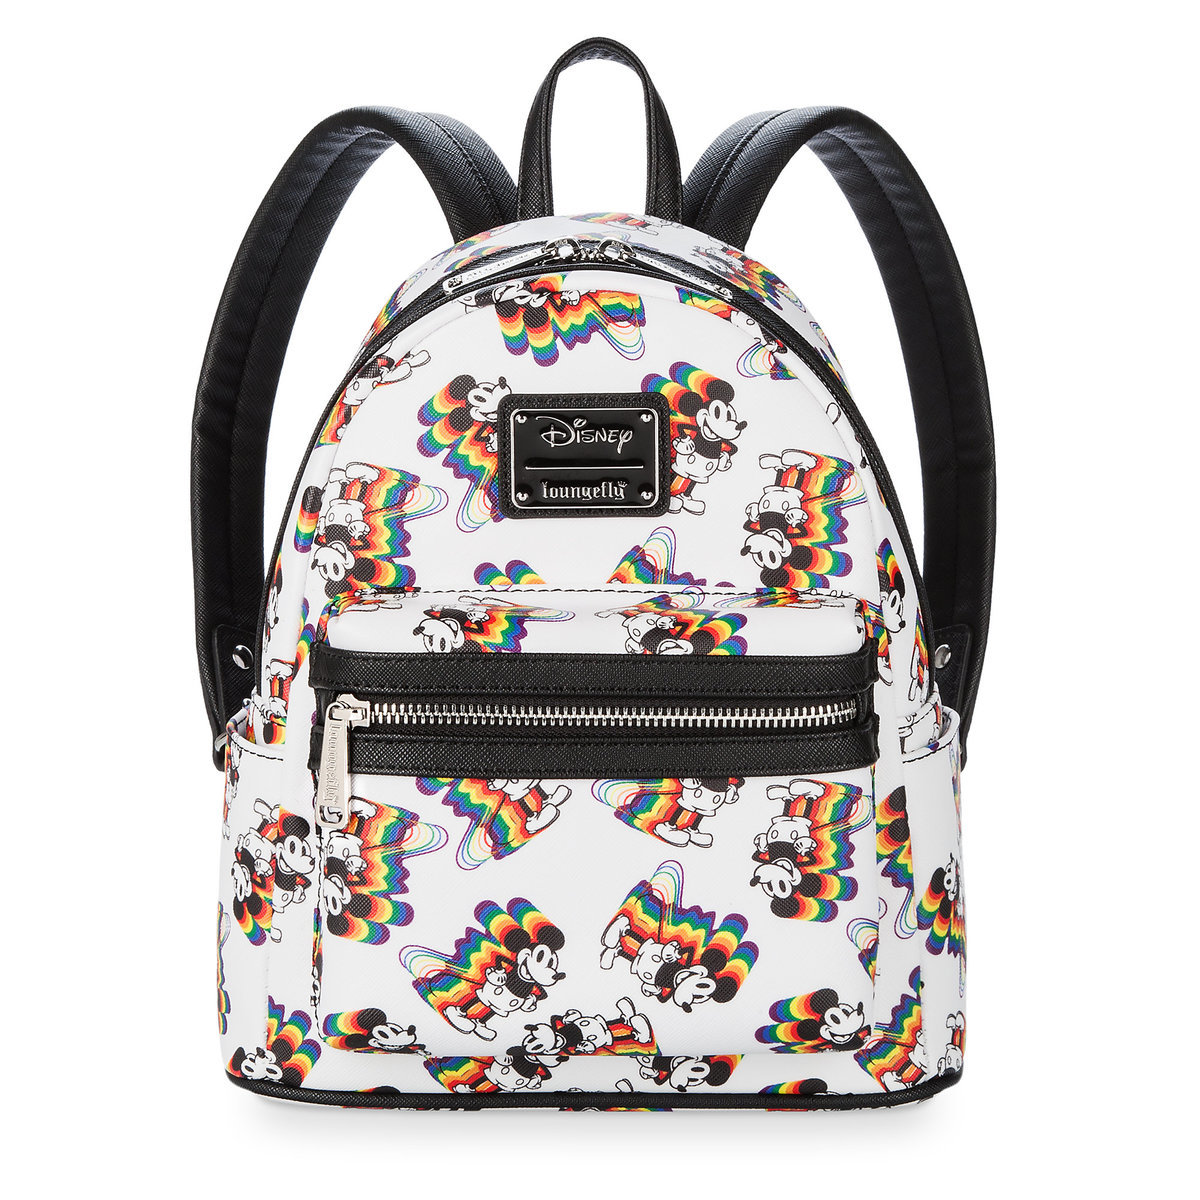 f97de7f2c04 Product Image of Mickey Mouse Rainbow Mini Backpack by Loungefly   1